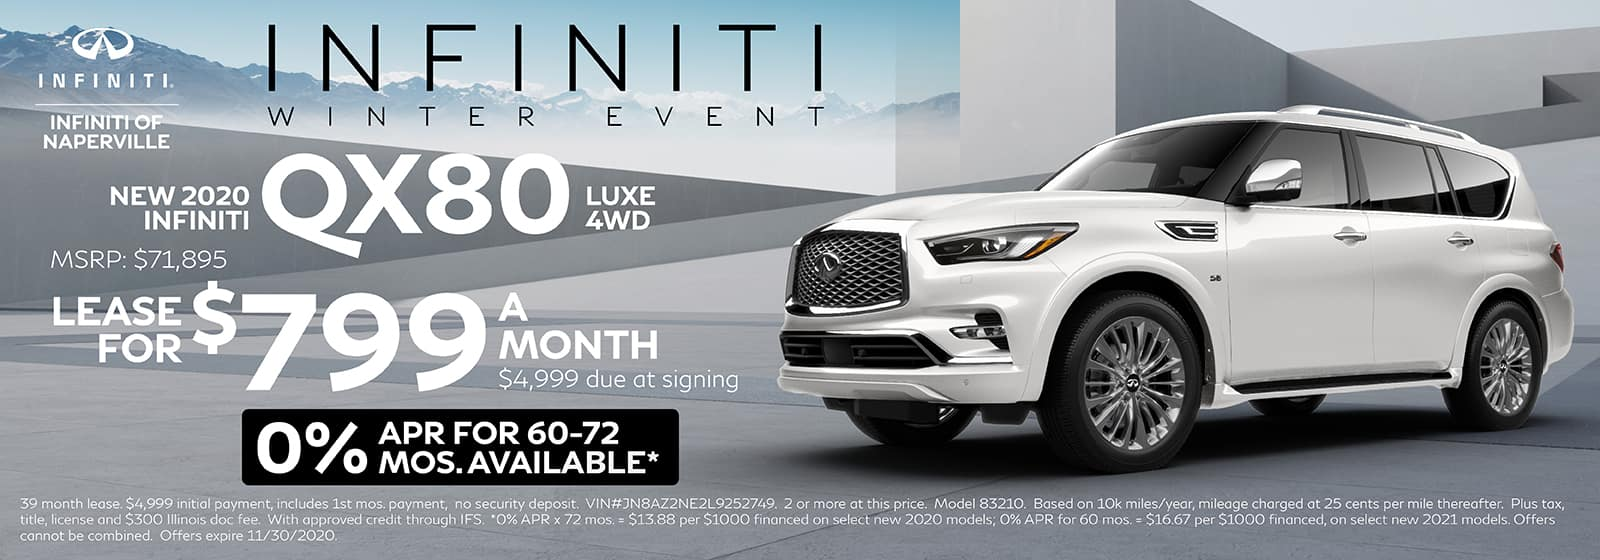 2020 INFINITI QX80 lease offer, $799/mo for 72 Months | Naperville, IL